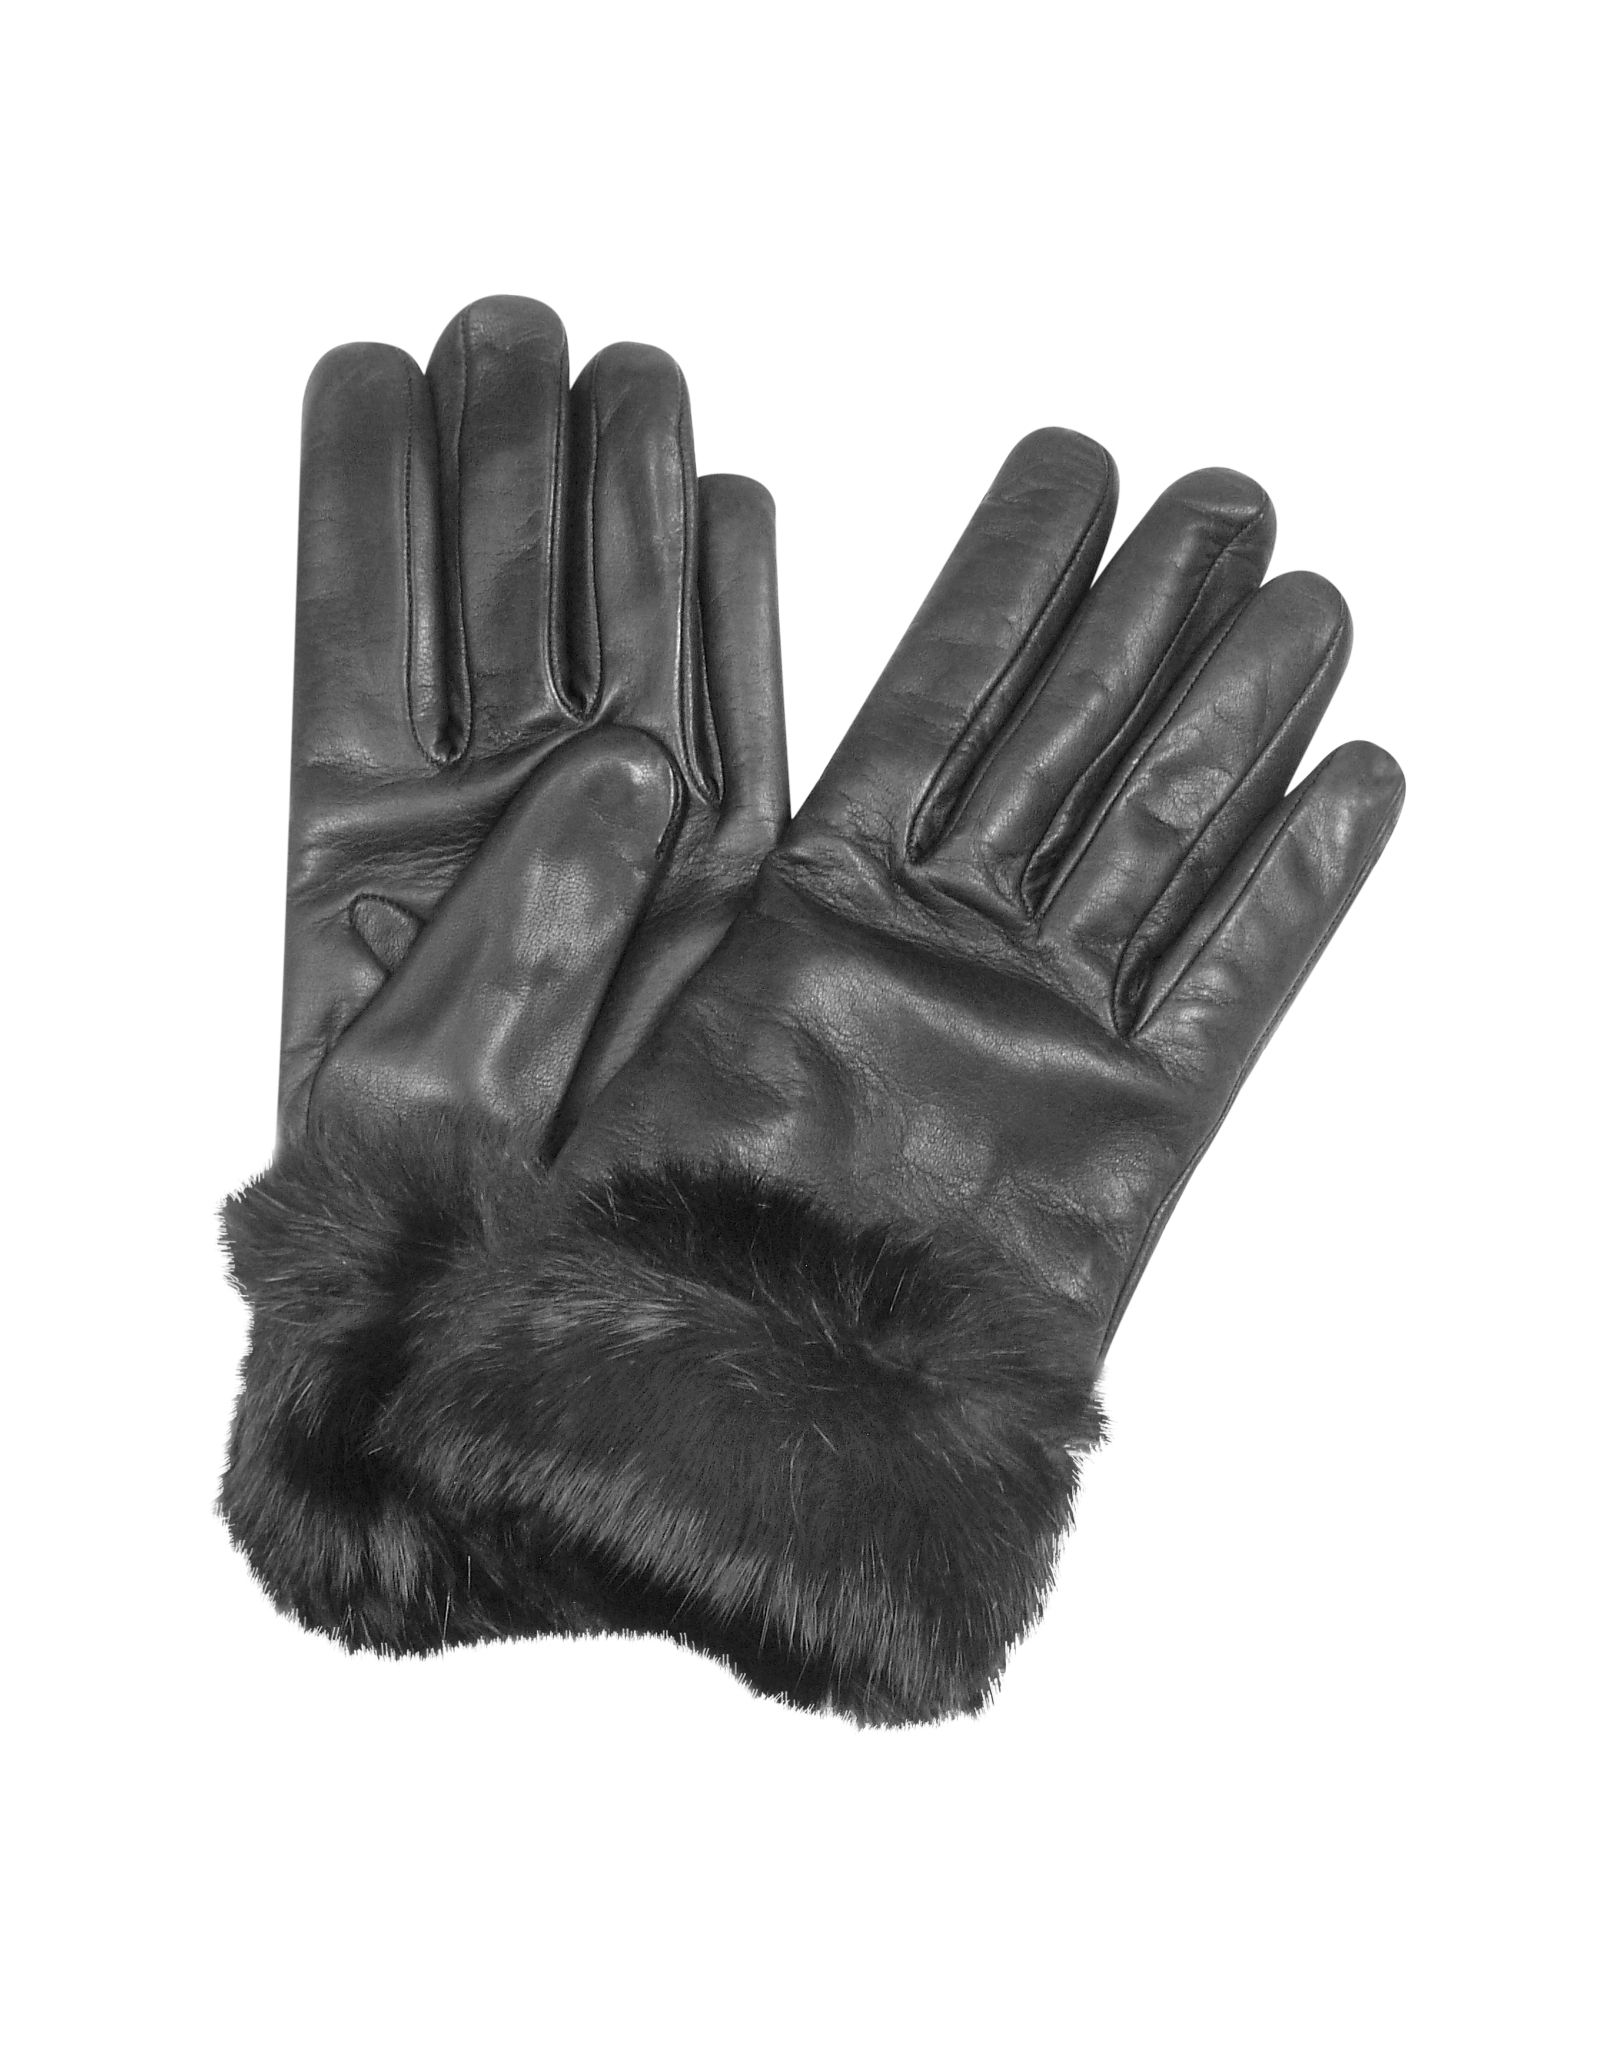 fe13126cfb8c Forzieri Black Cashmere Lined Italian Leather Gloves with Fur S